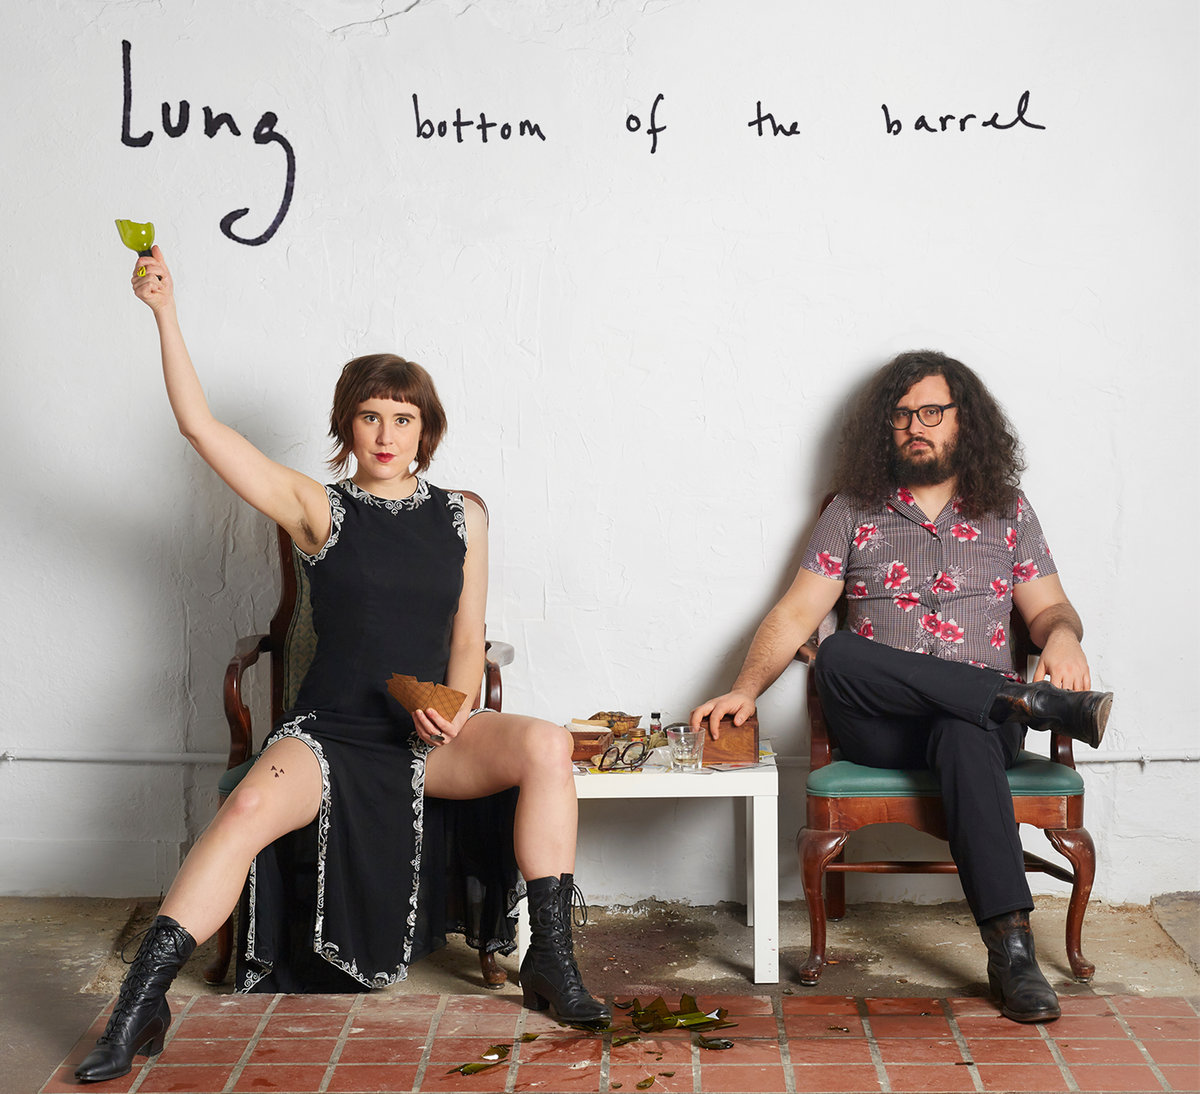 Lung: Bottom Of The Barrel [Album Review]